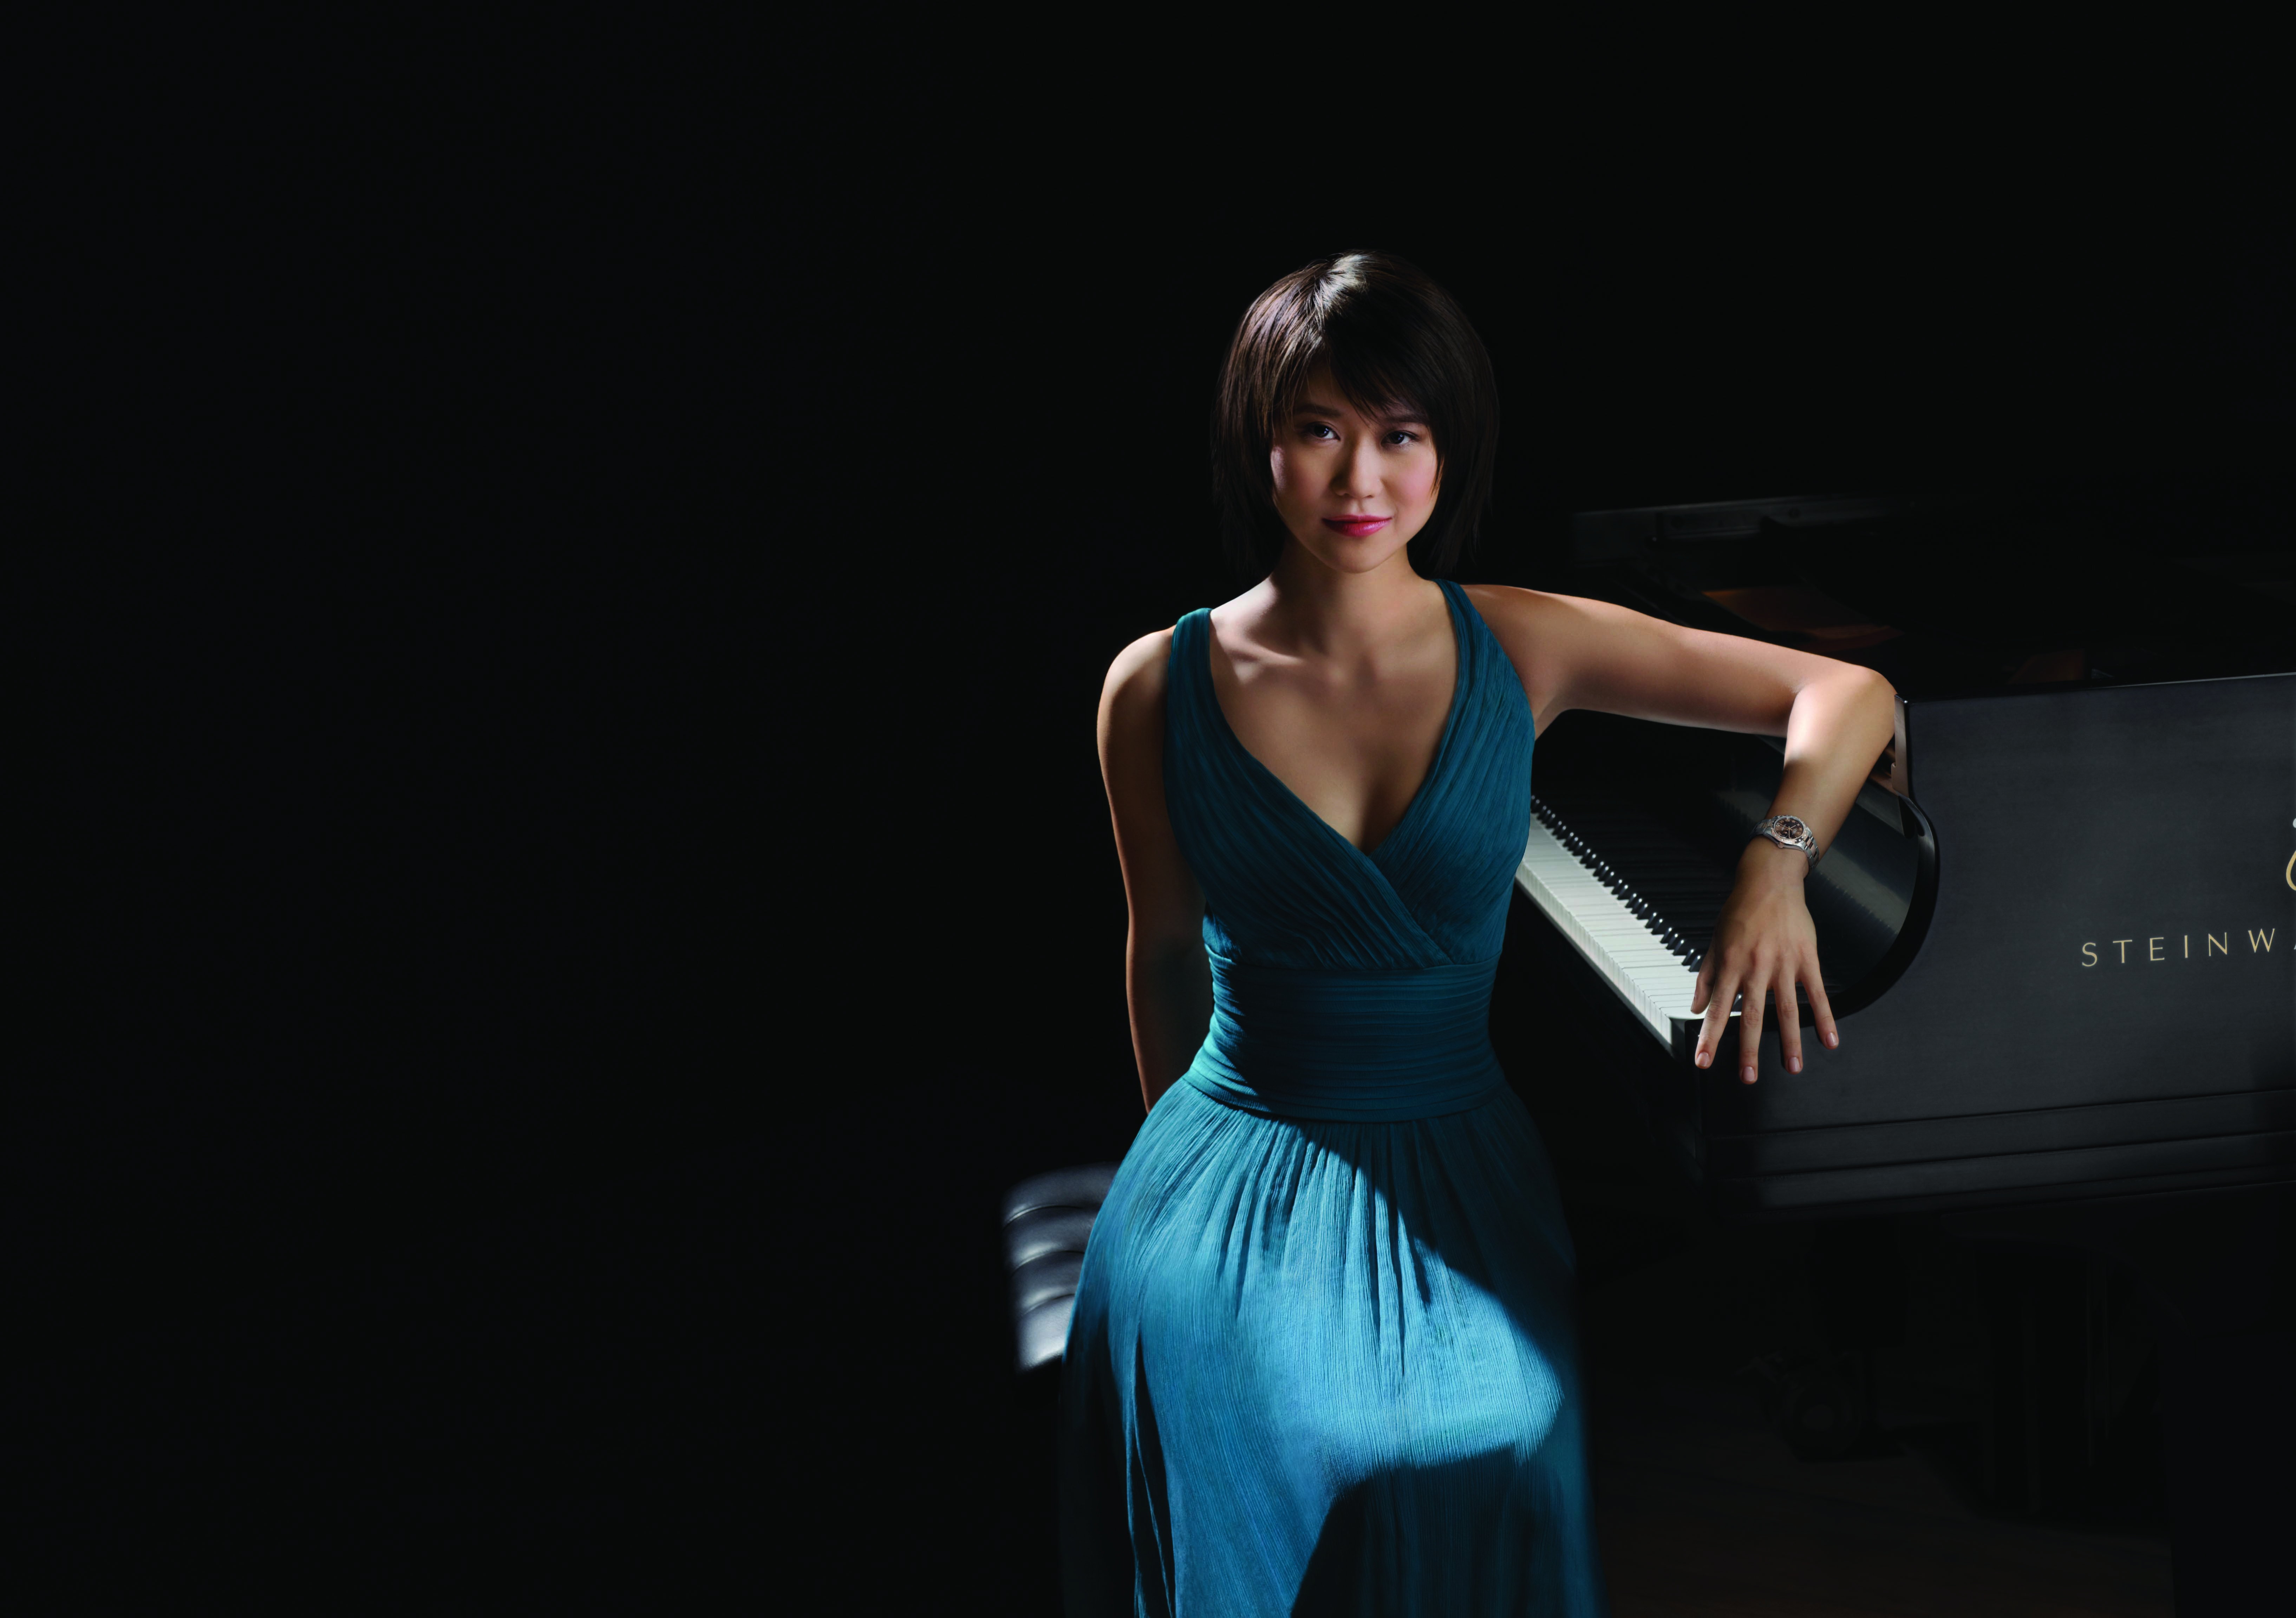 Twenty seven year old pianist Yuja Wang is widely recognized as one of the most important artists of her generation Regularly lauded for her controlled